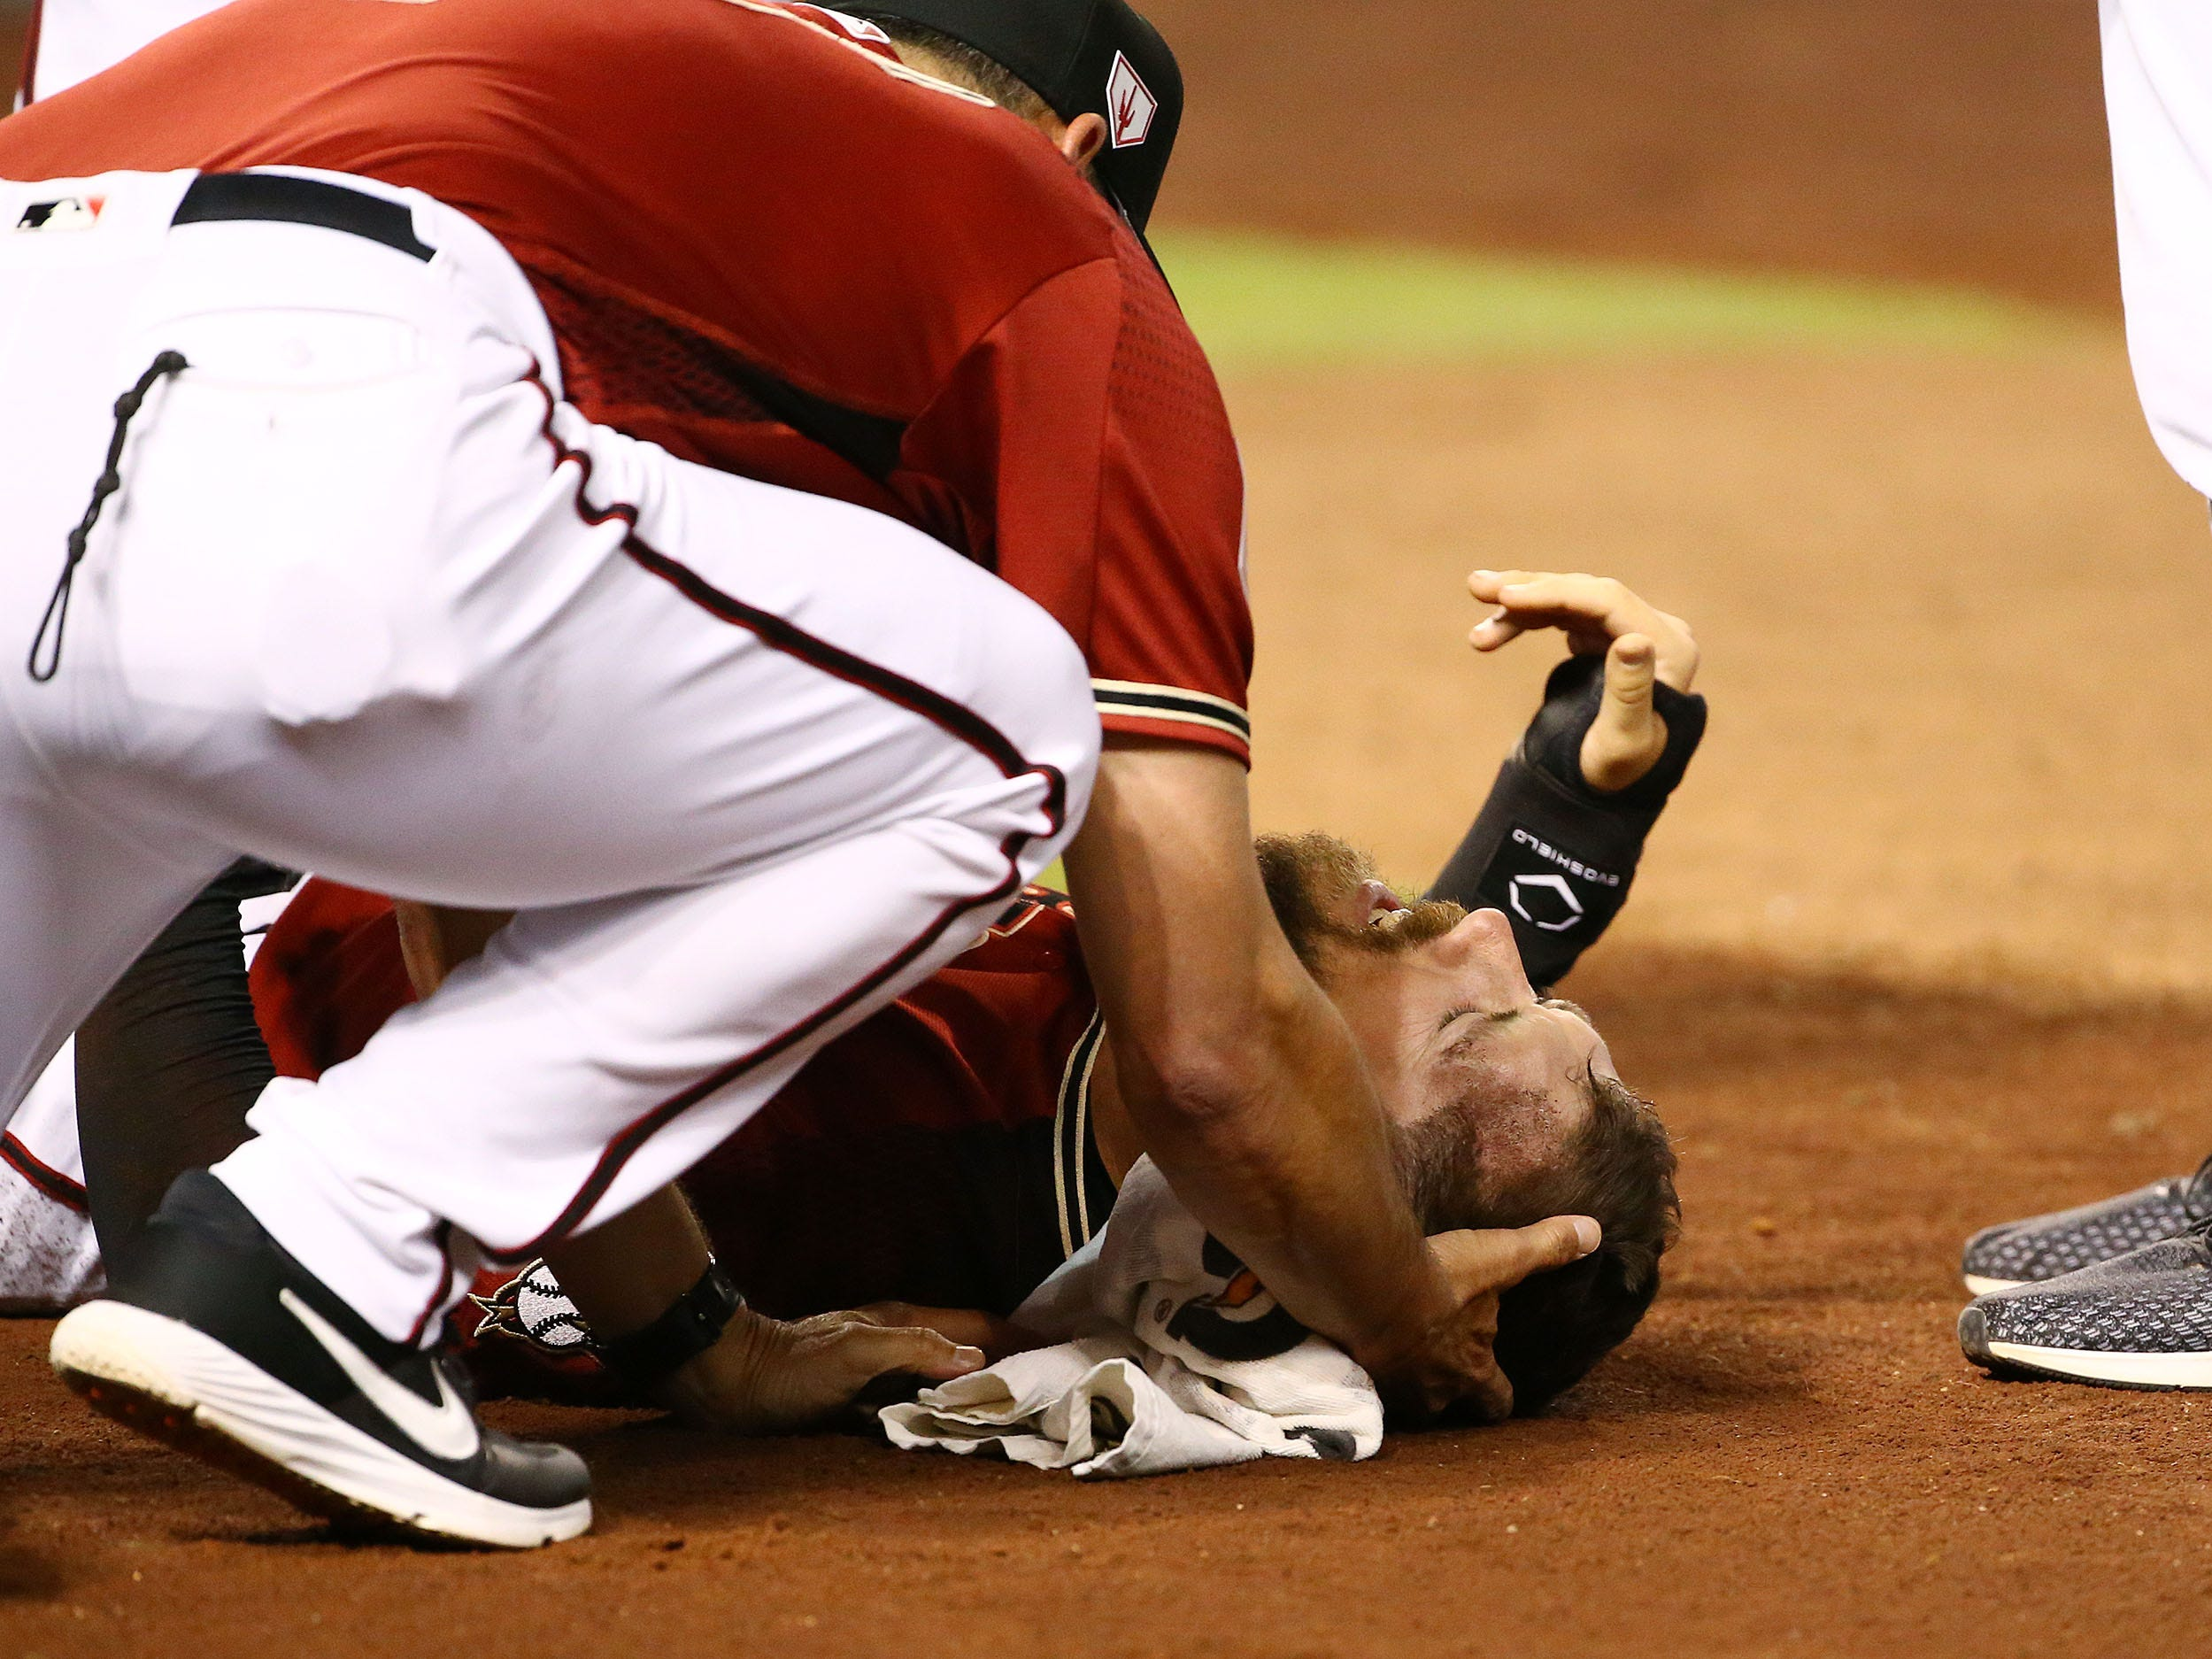 Arizona Diamondbacks manager Torey Lovullo comforts Steven Souza Jr. after suffering an injury to his leg against the Chicago White Sox in the fourth inning during a spring training game on Mar. 25, 2019 at Chase Field in Phoenix, Ariz.